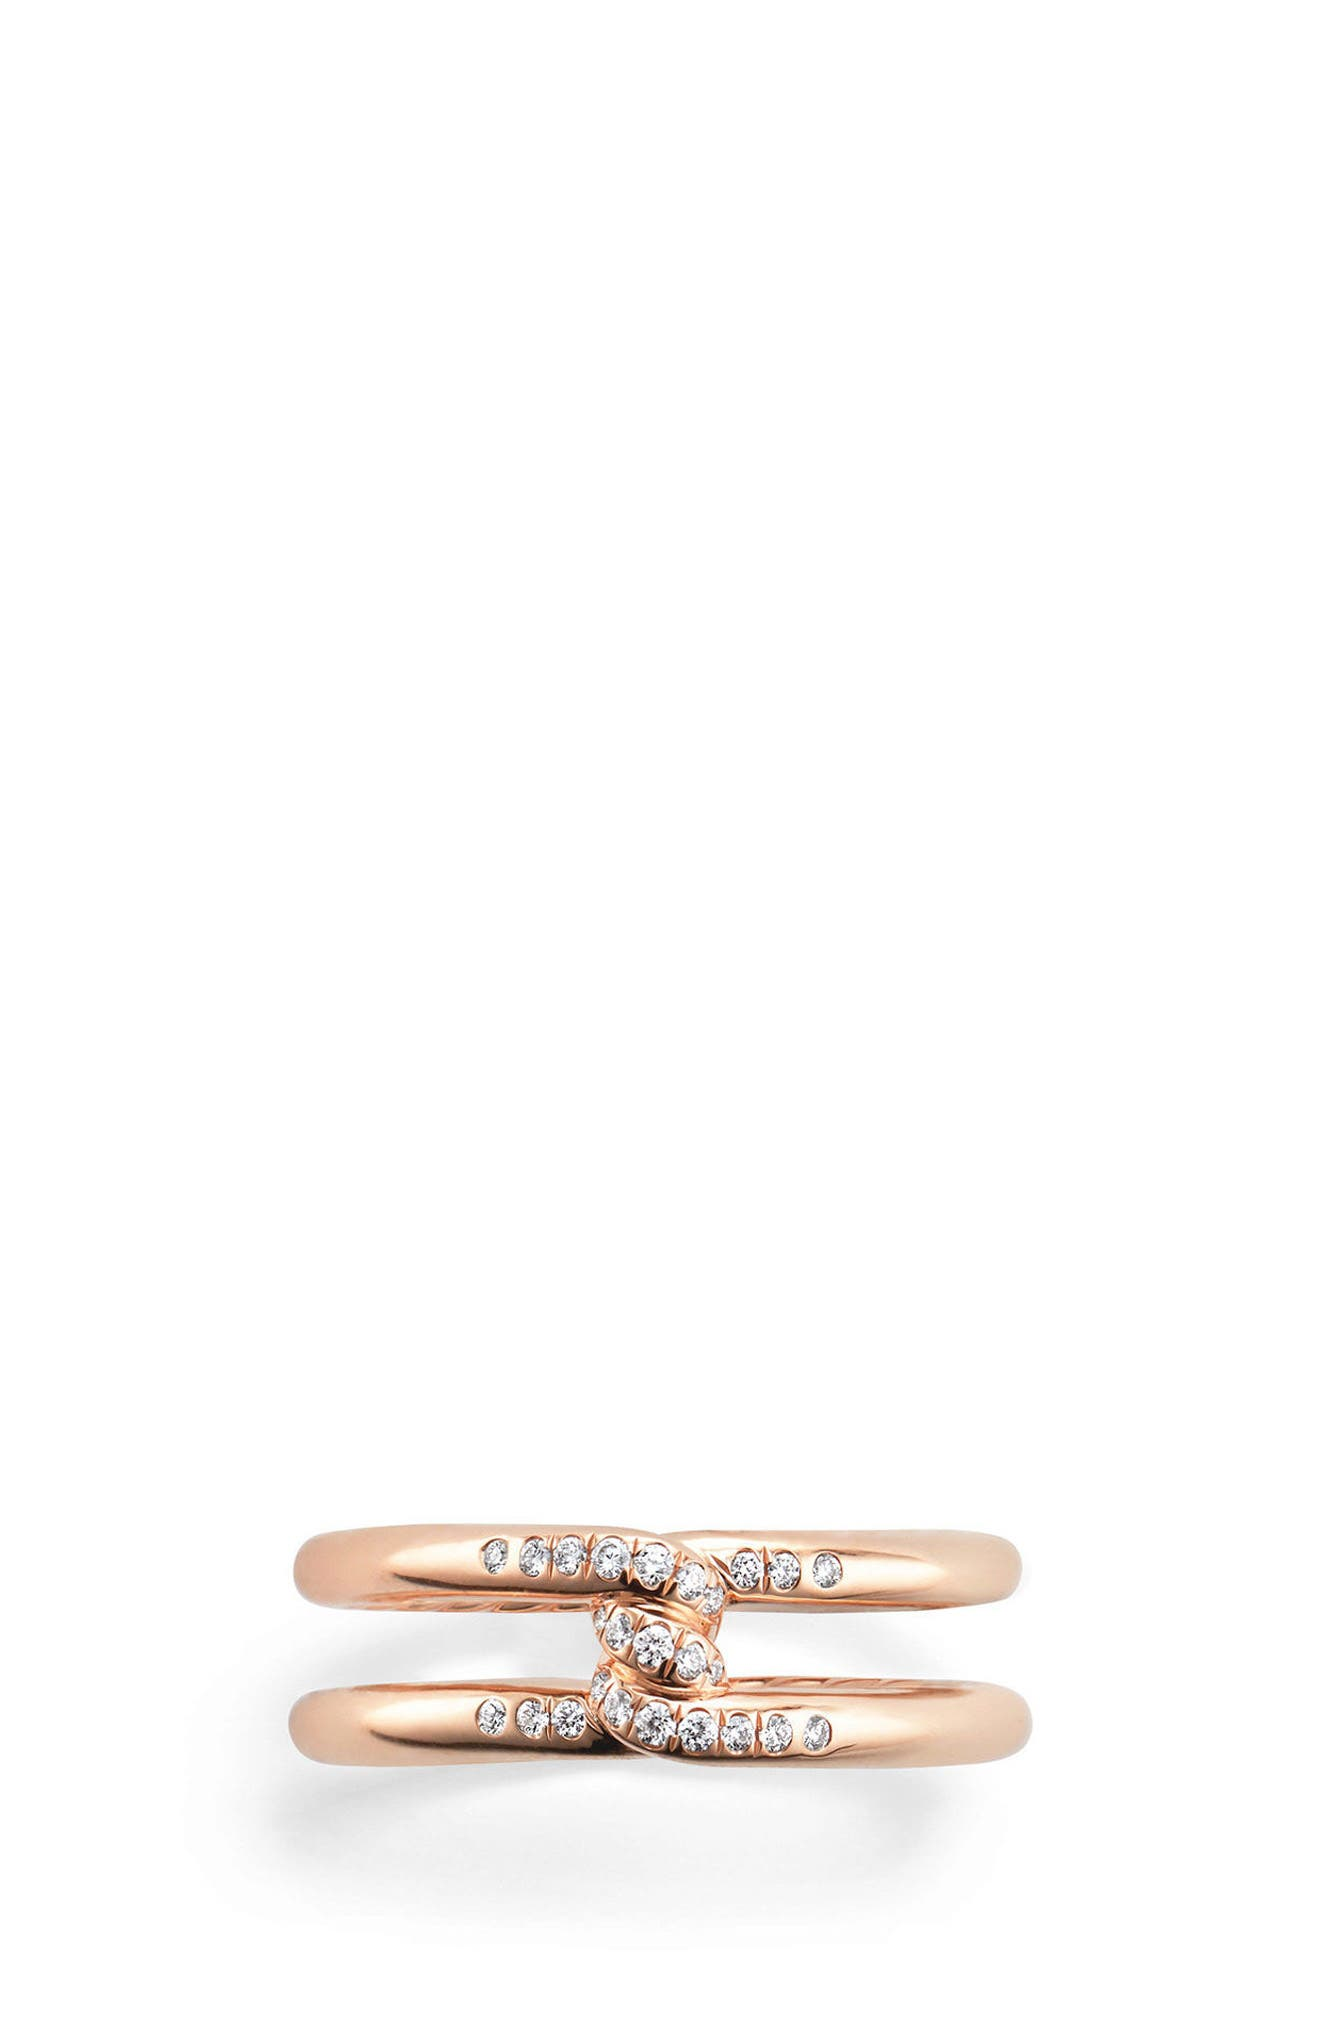 Continuance Band Ring with Diamonds in 18k Gold, 6.5mm,                         Main,                         color, ROSE GOLD